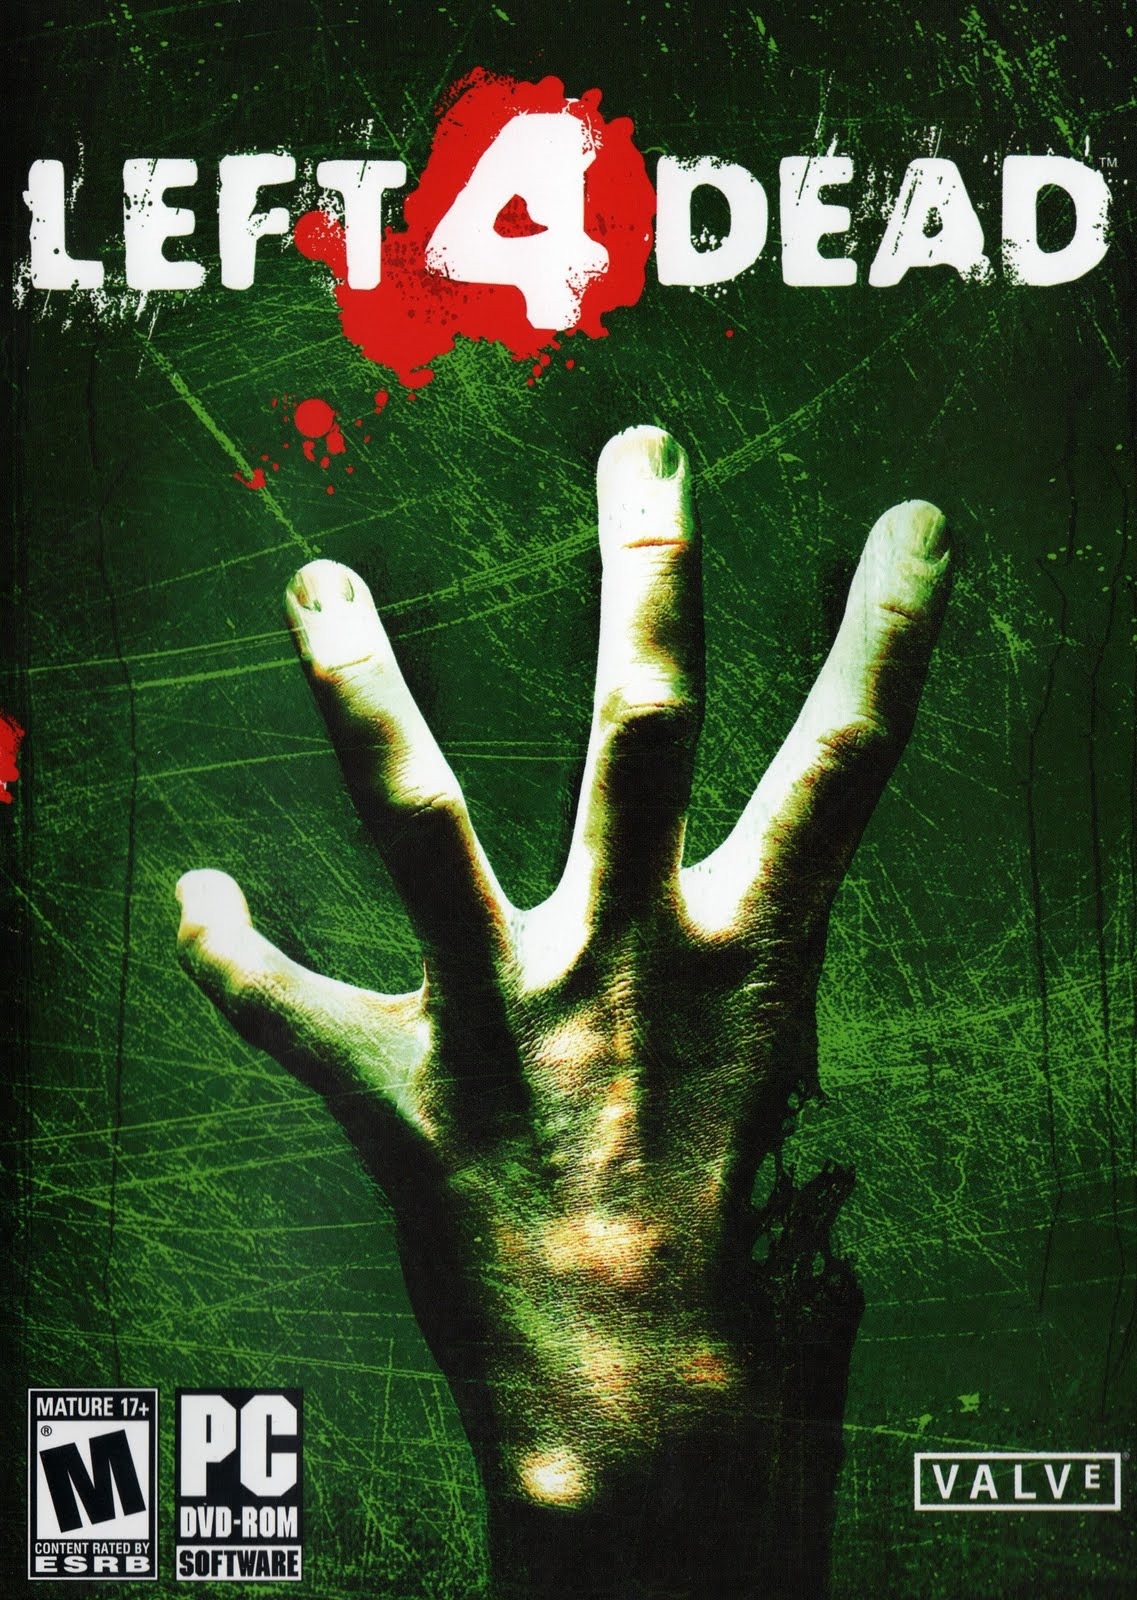 Dream Games: Left 4 Dead